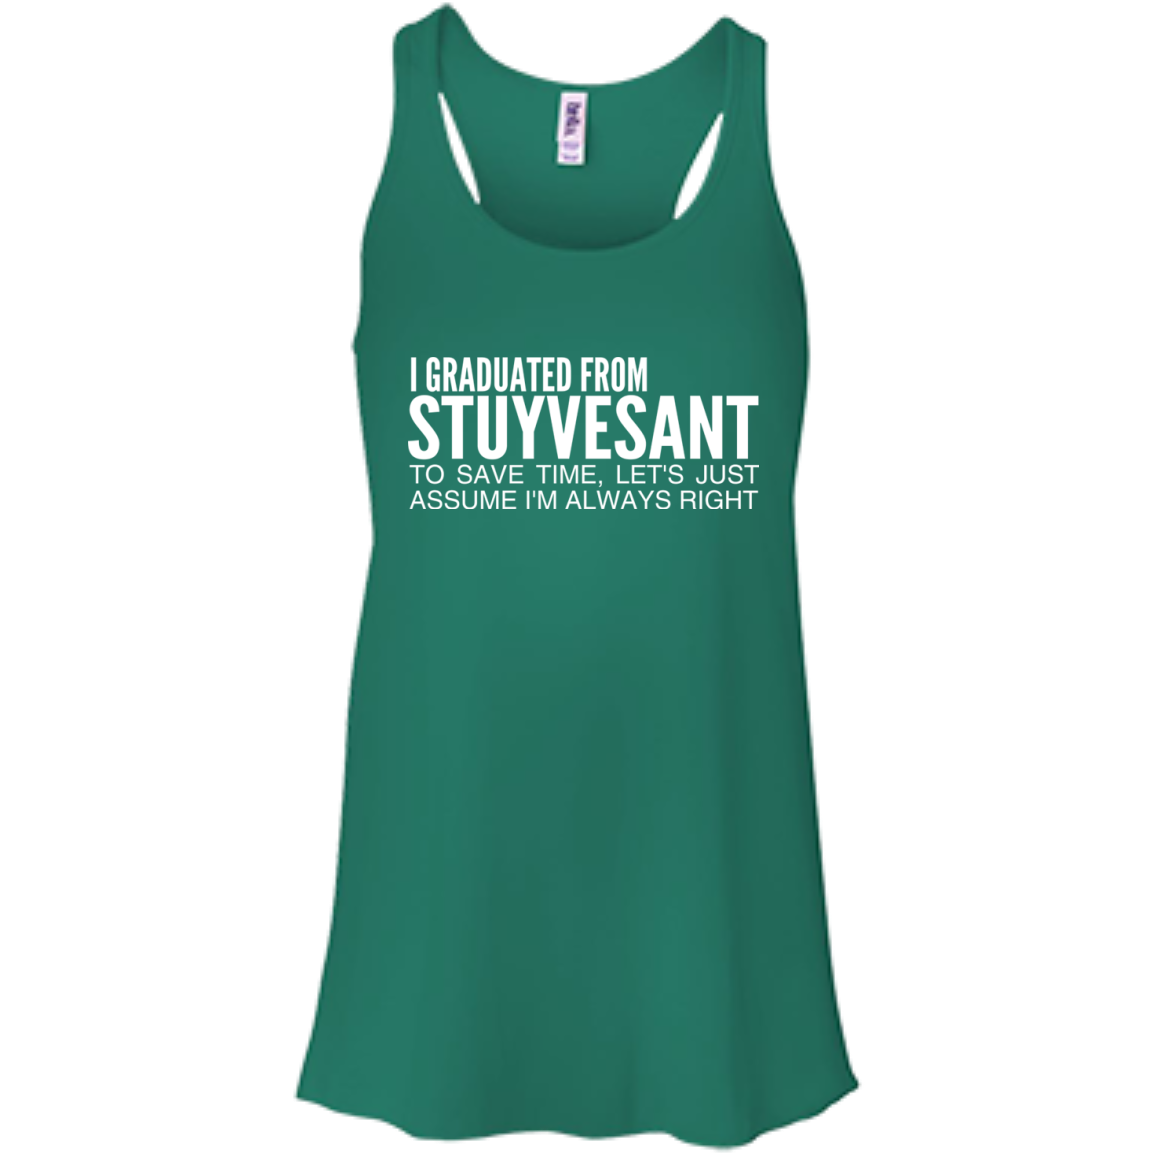 I Graduated From Stuyvesant To Save Time Lets Just Assume Im Always Right Flowy Racerback Tanks